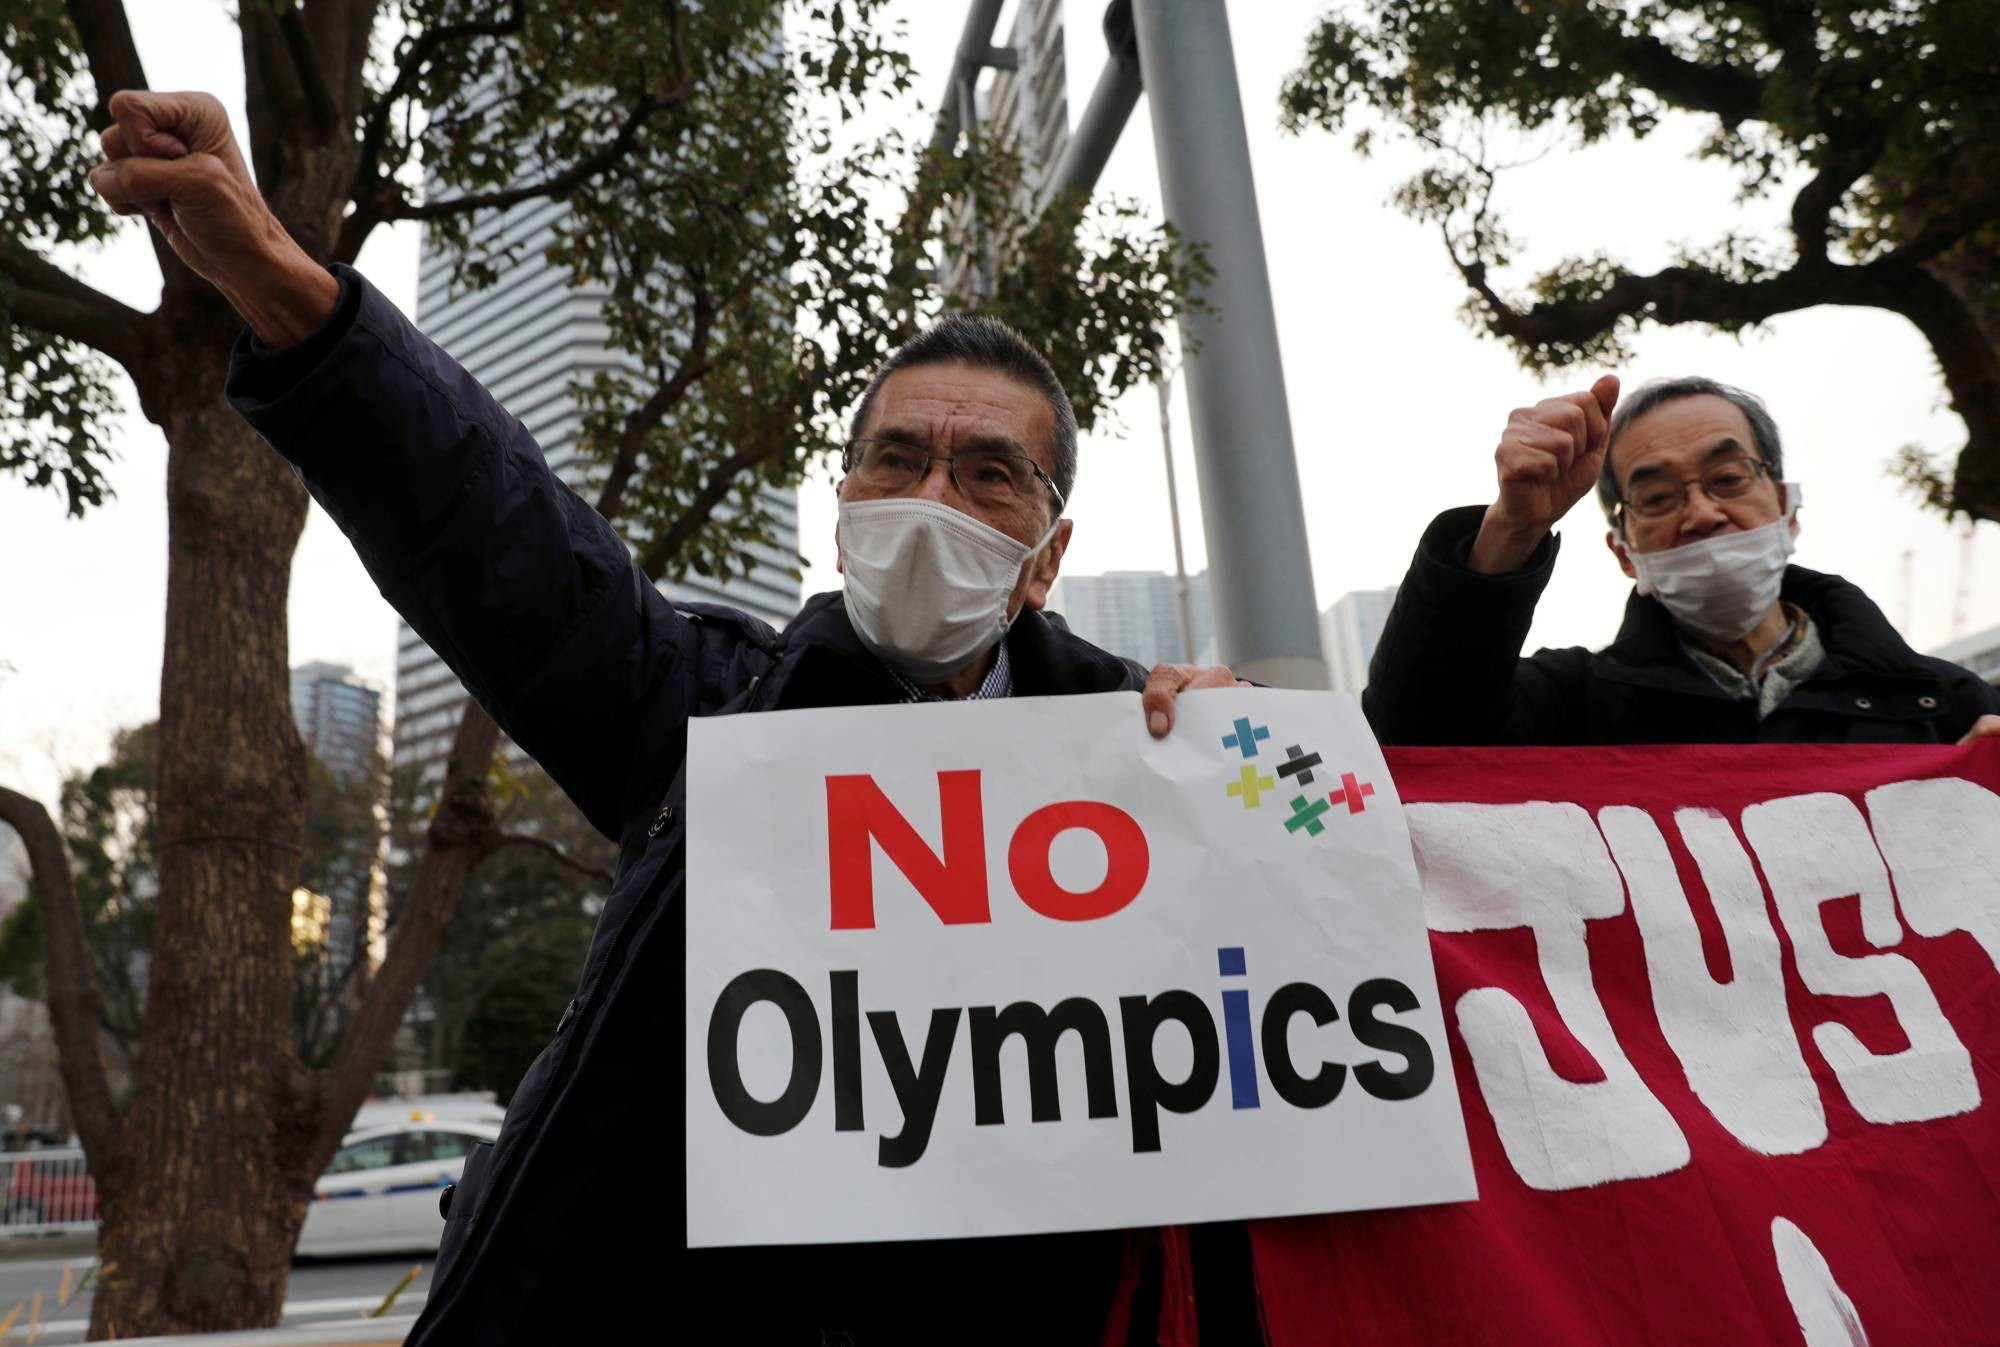 Survey shows that over half of Japan firms want Olympics cancelled or postponed